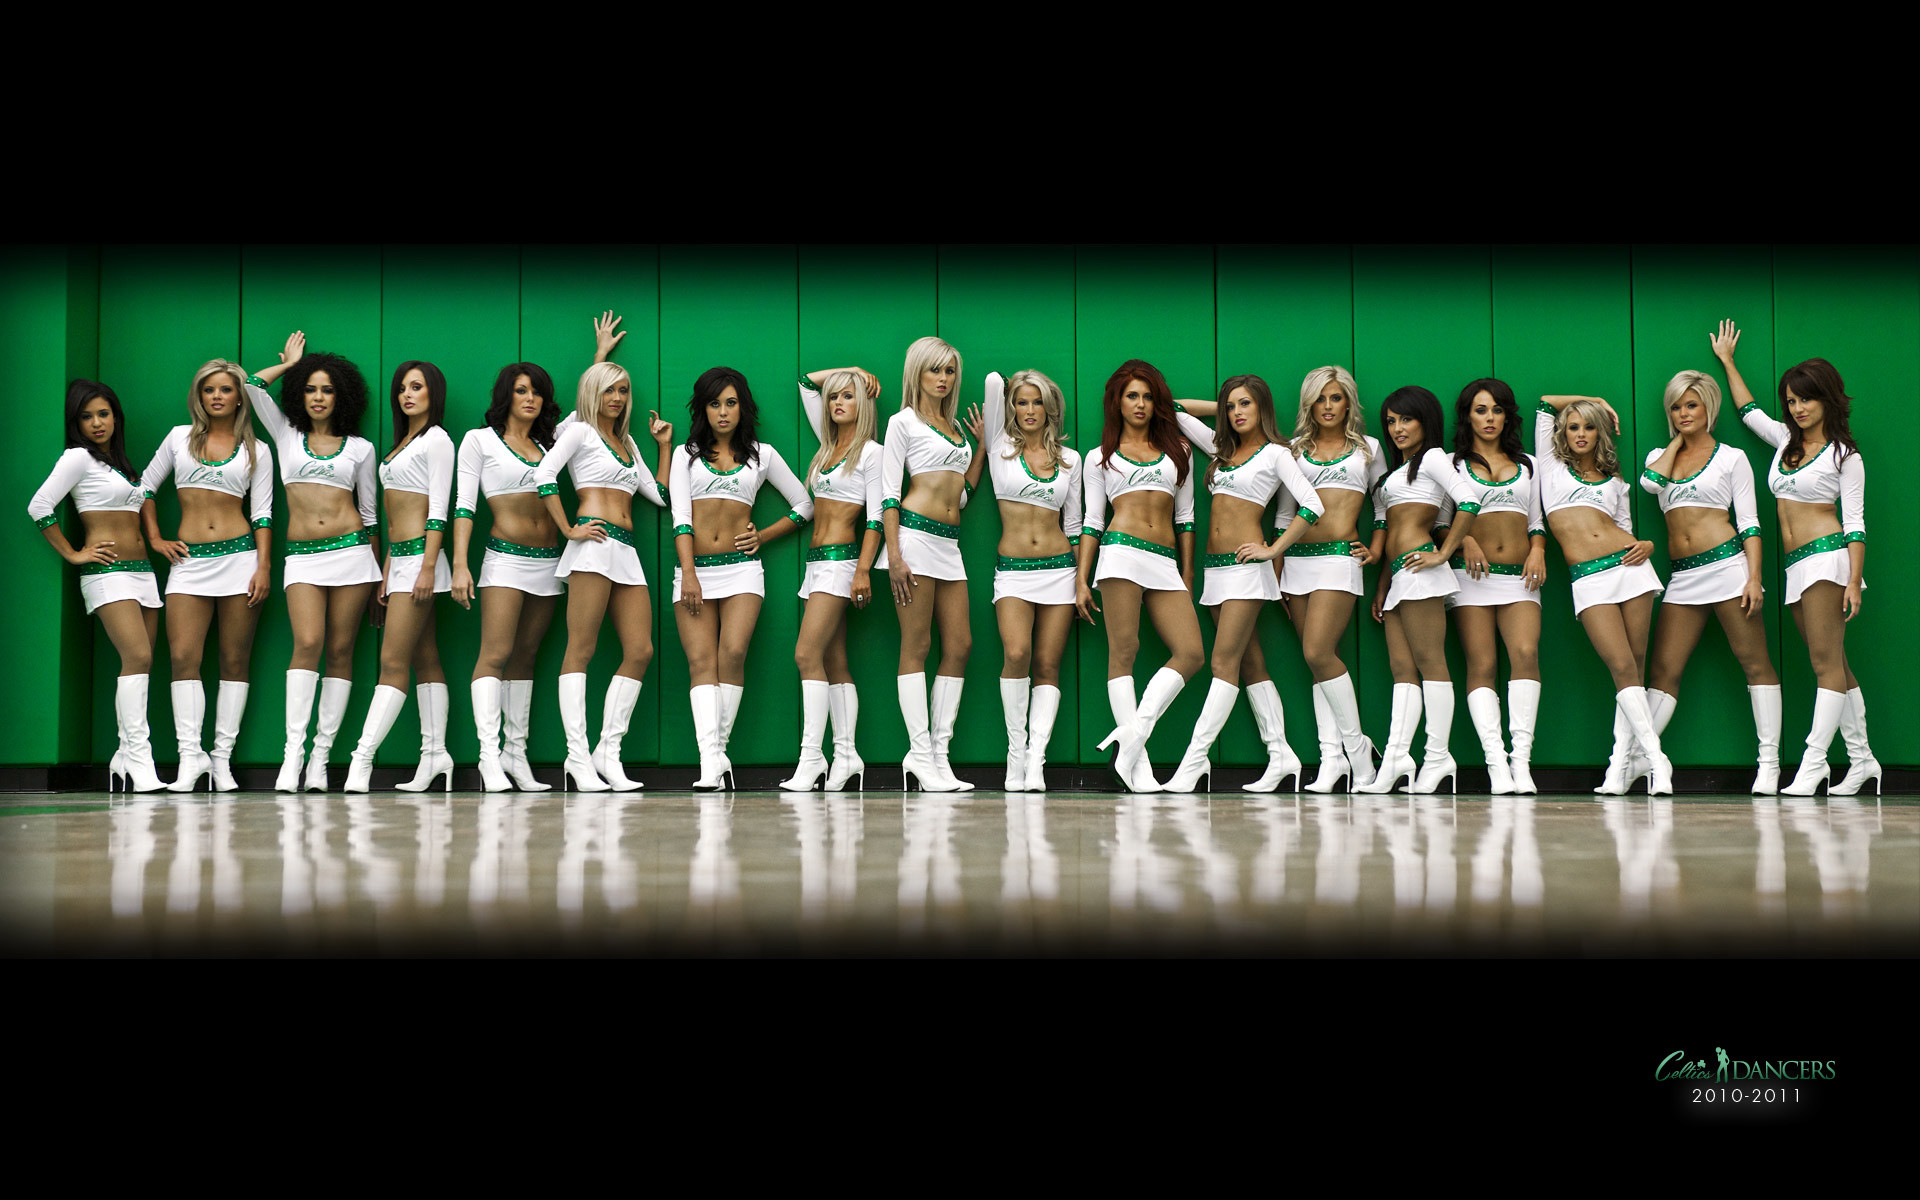 1920x1200 Boston, Celtics, Cheerleaders, Hd, Wallpaper